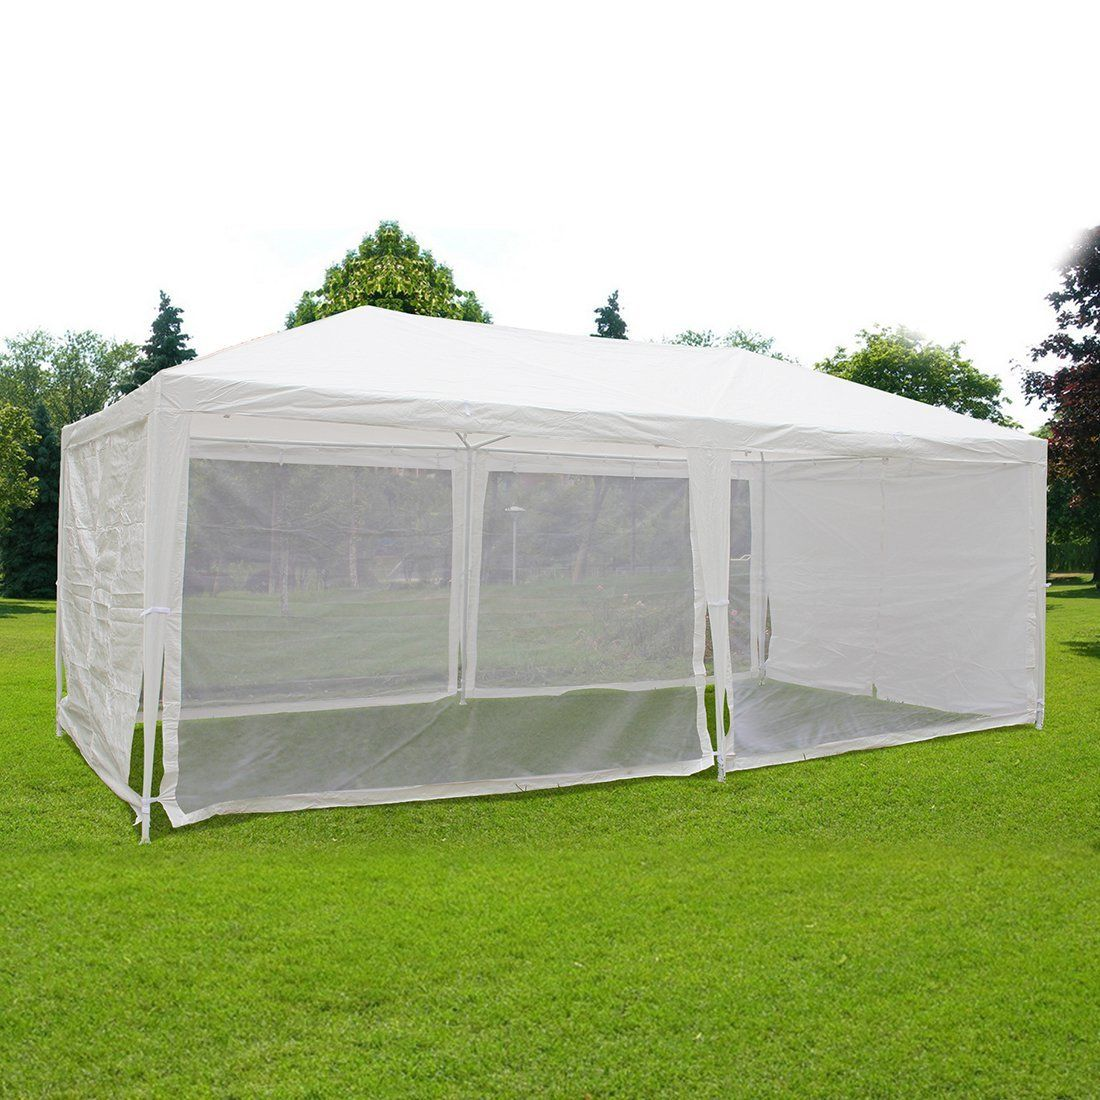 AmazonSmile  Quictent 10X30 Outdoor Canopy Gazebo Party Wedding tent Screen House Sun Shade Shelter with  sc 1 st  Pinterest : 10x30 wedding tent - memphite.com